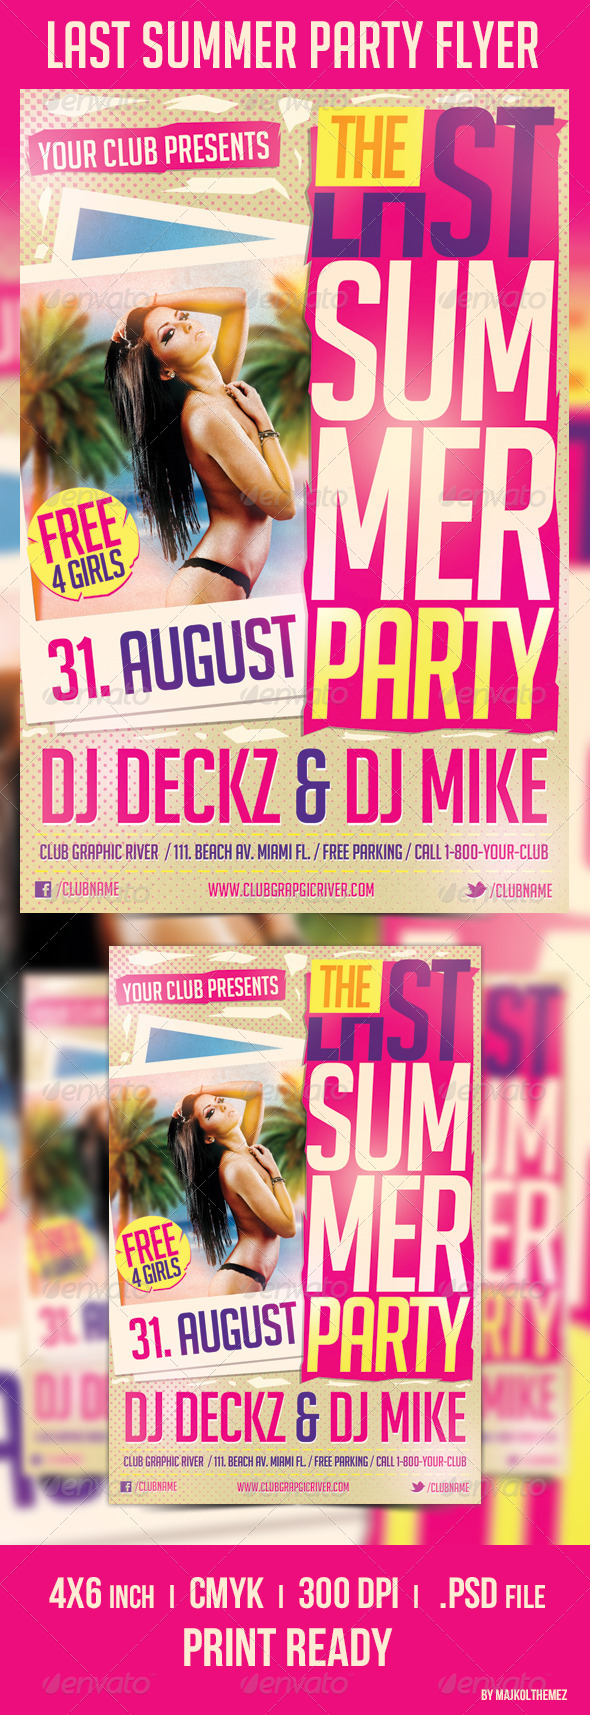 GraphicRiver Last Summer Party Flyer Template 5404229